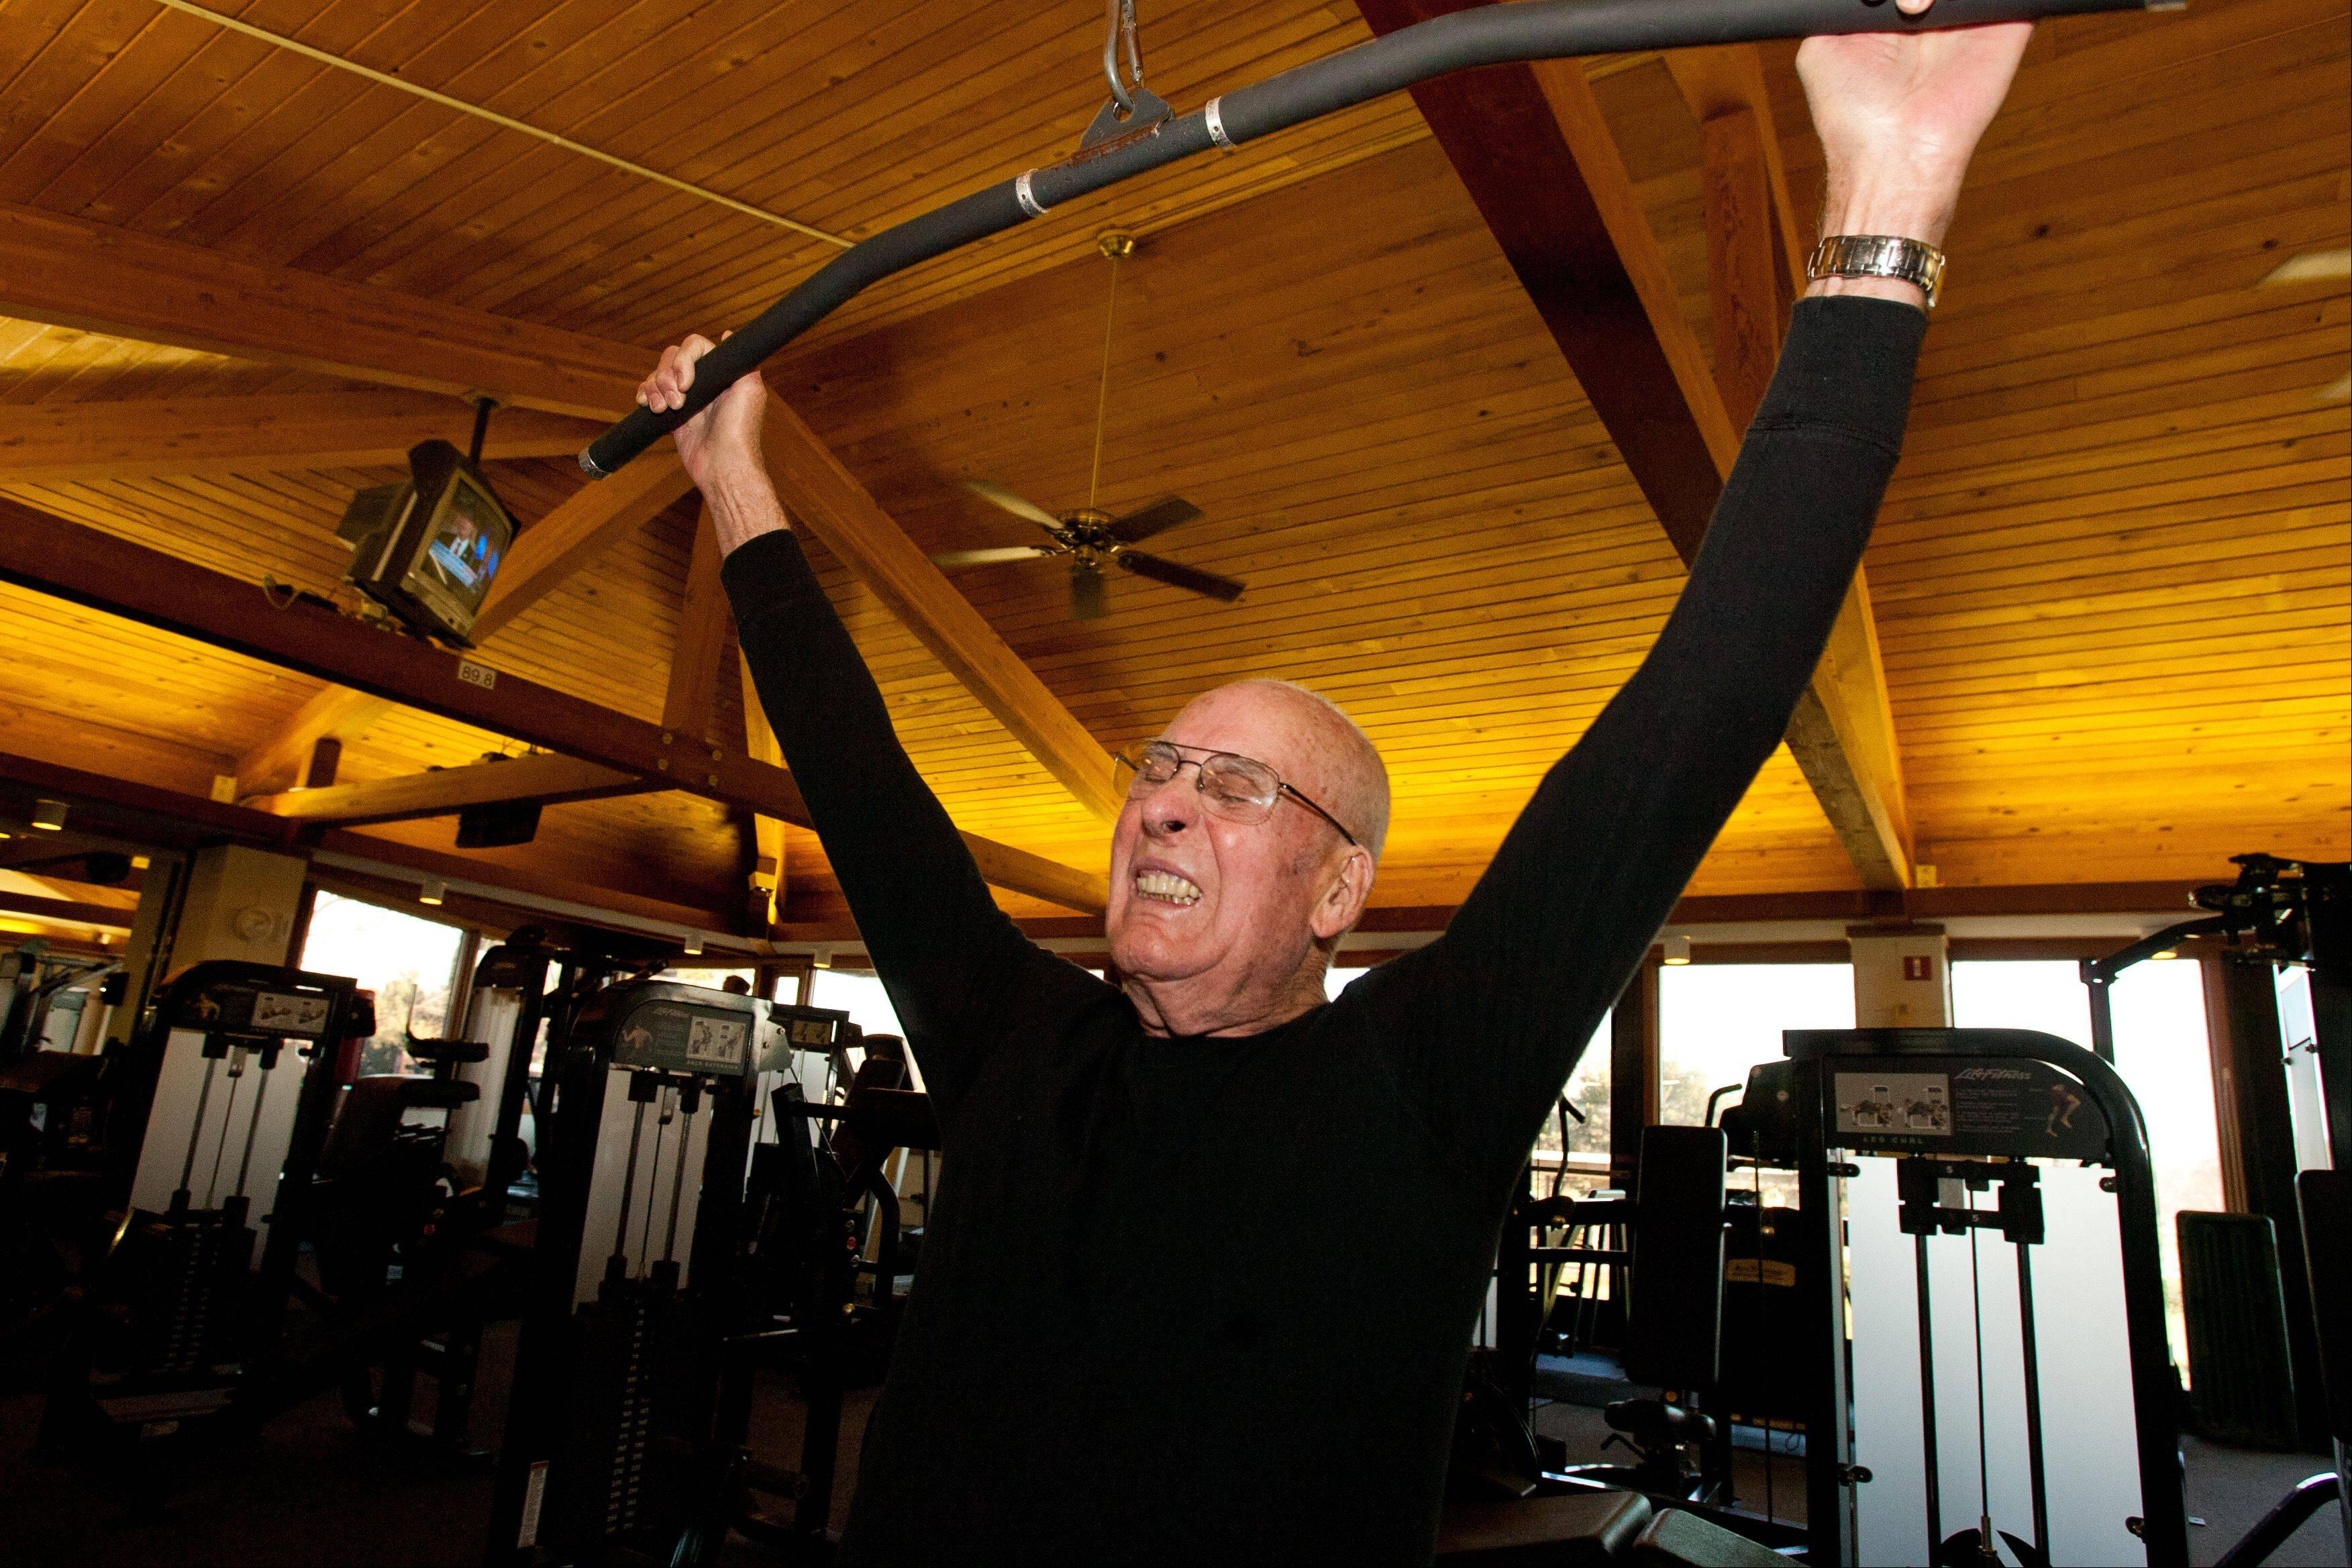 Charles Fultz's workout includes resistance training.